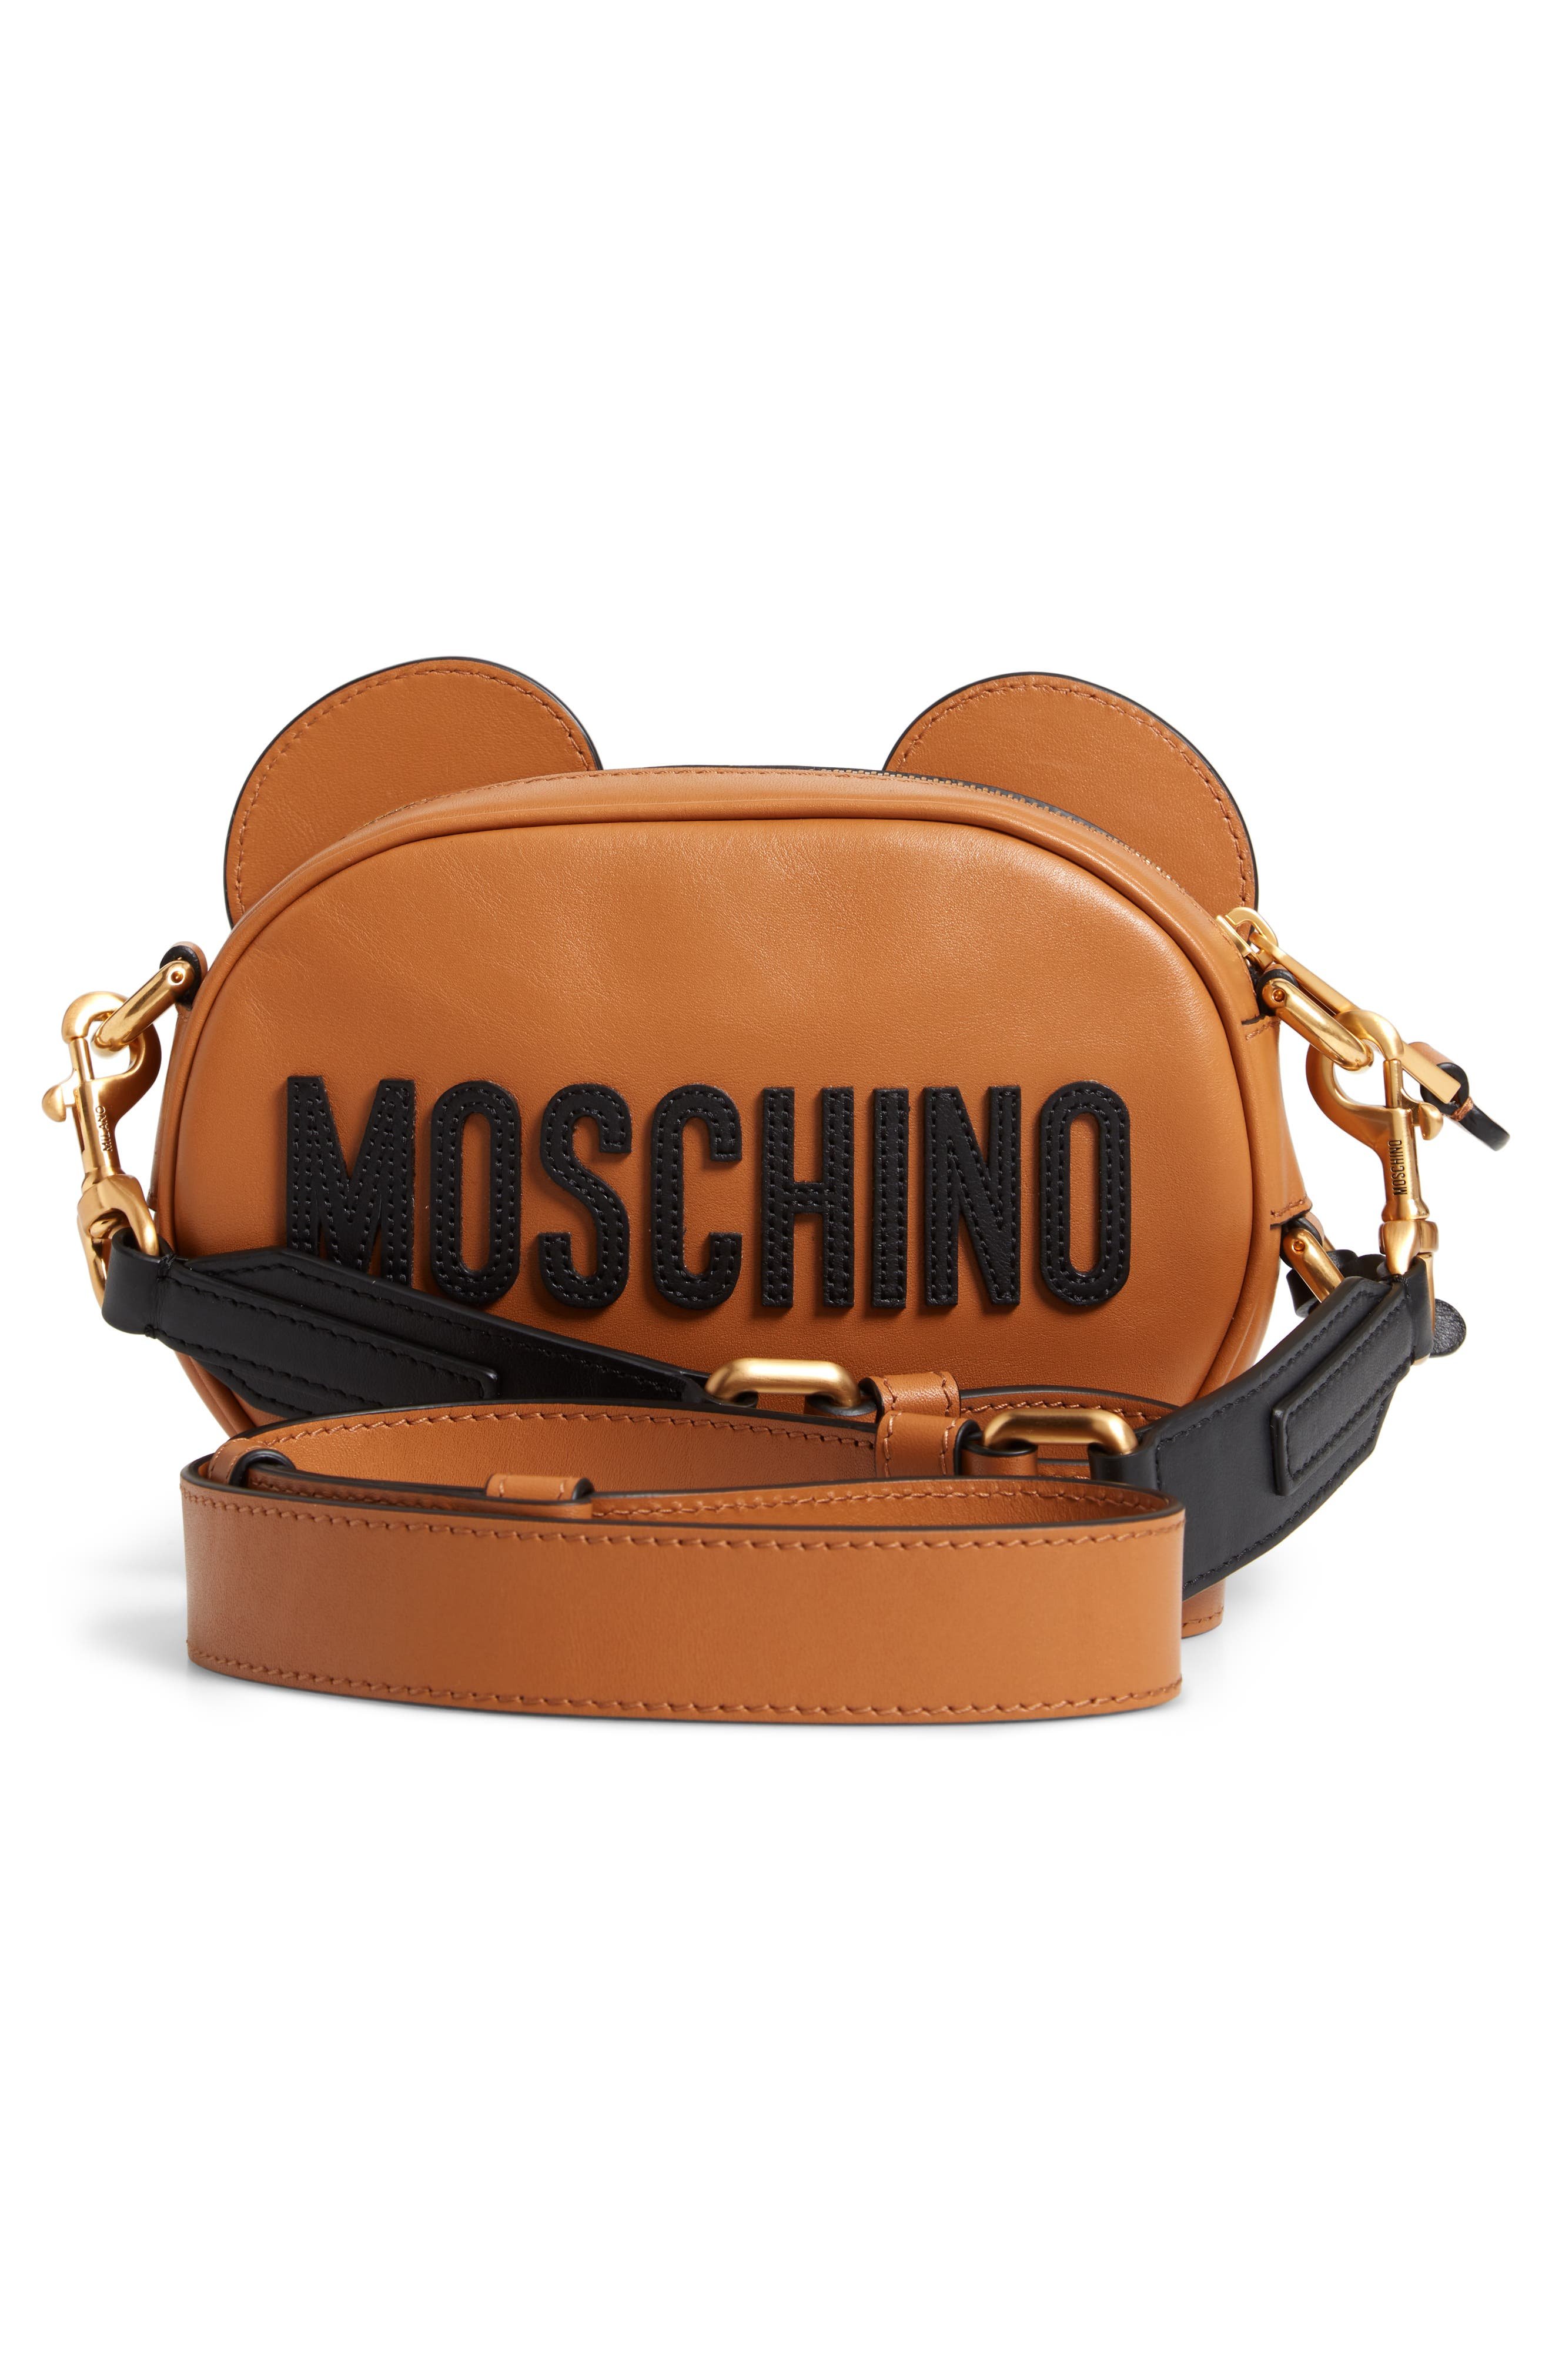 MOSCHINO, Crystal Teddy Leather Crossbody Bag, Alternate thumbnail 3, color, BROWN